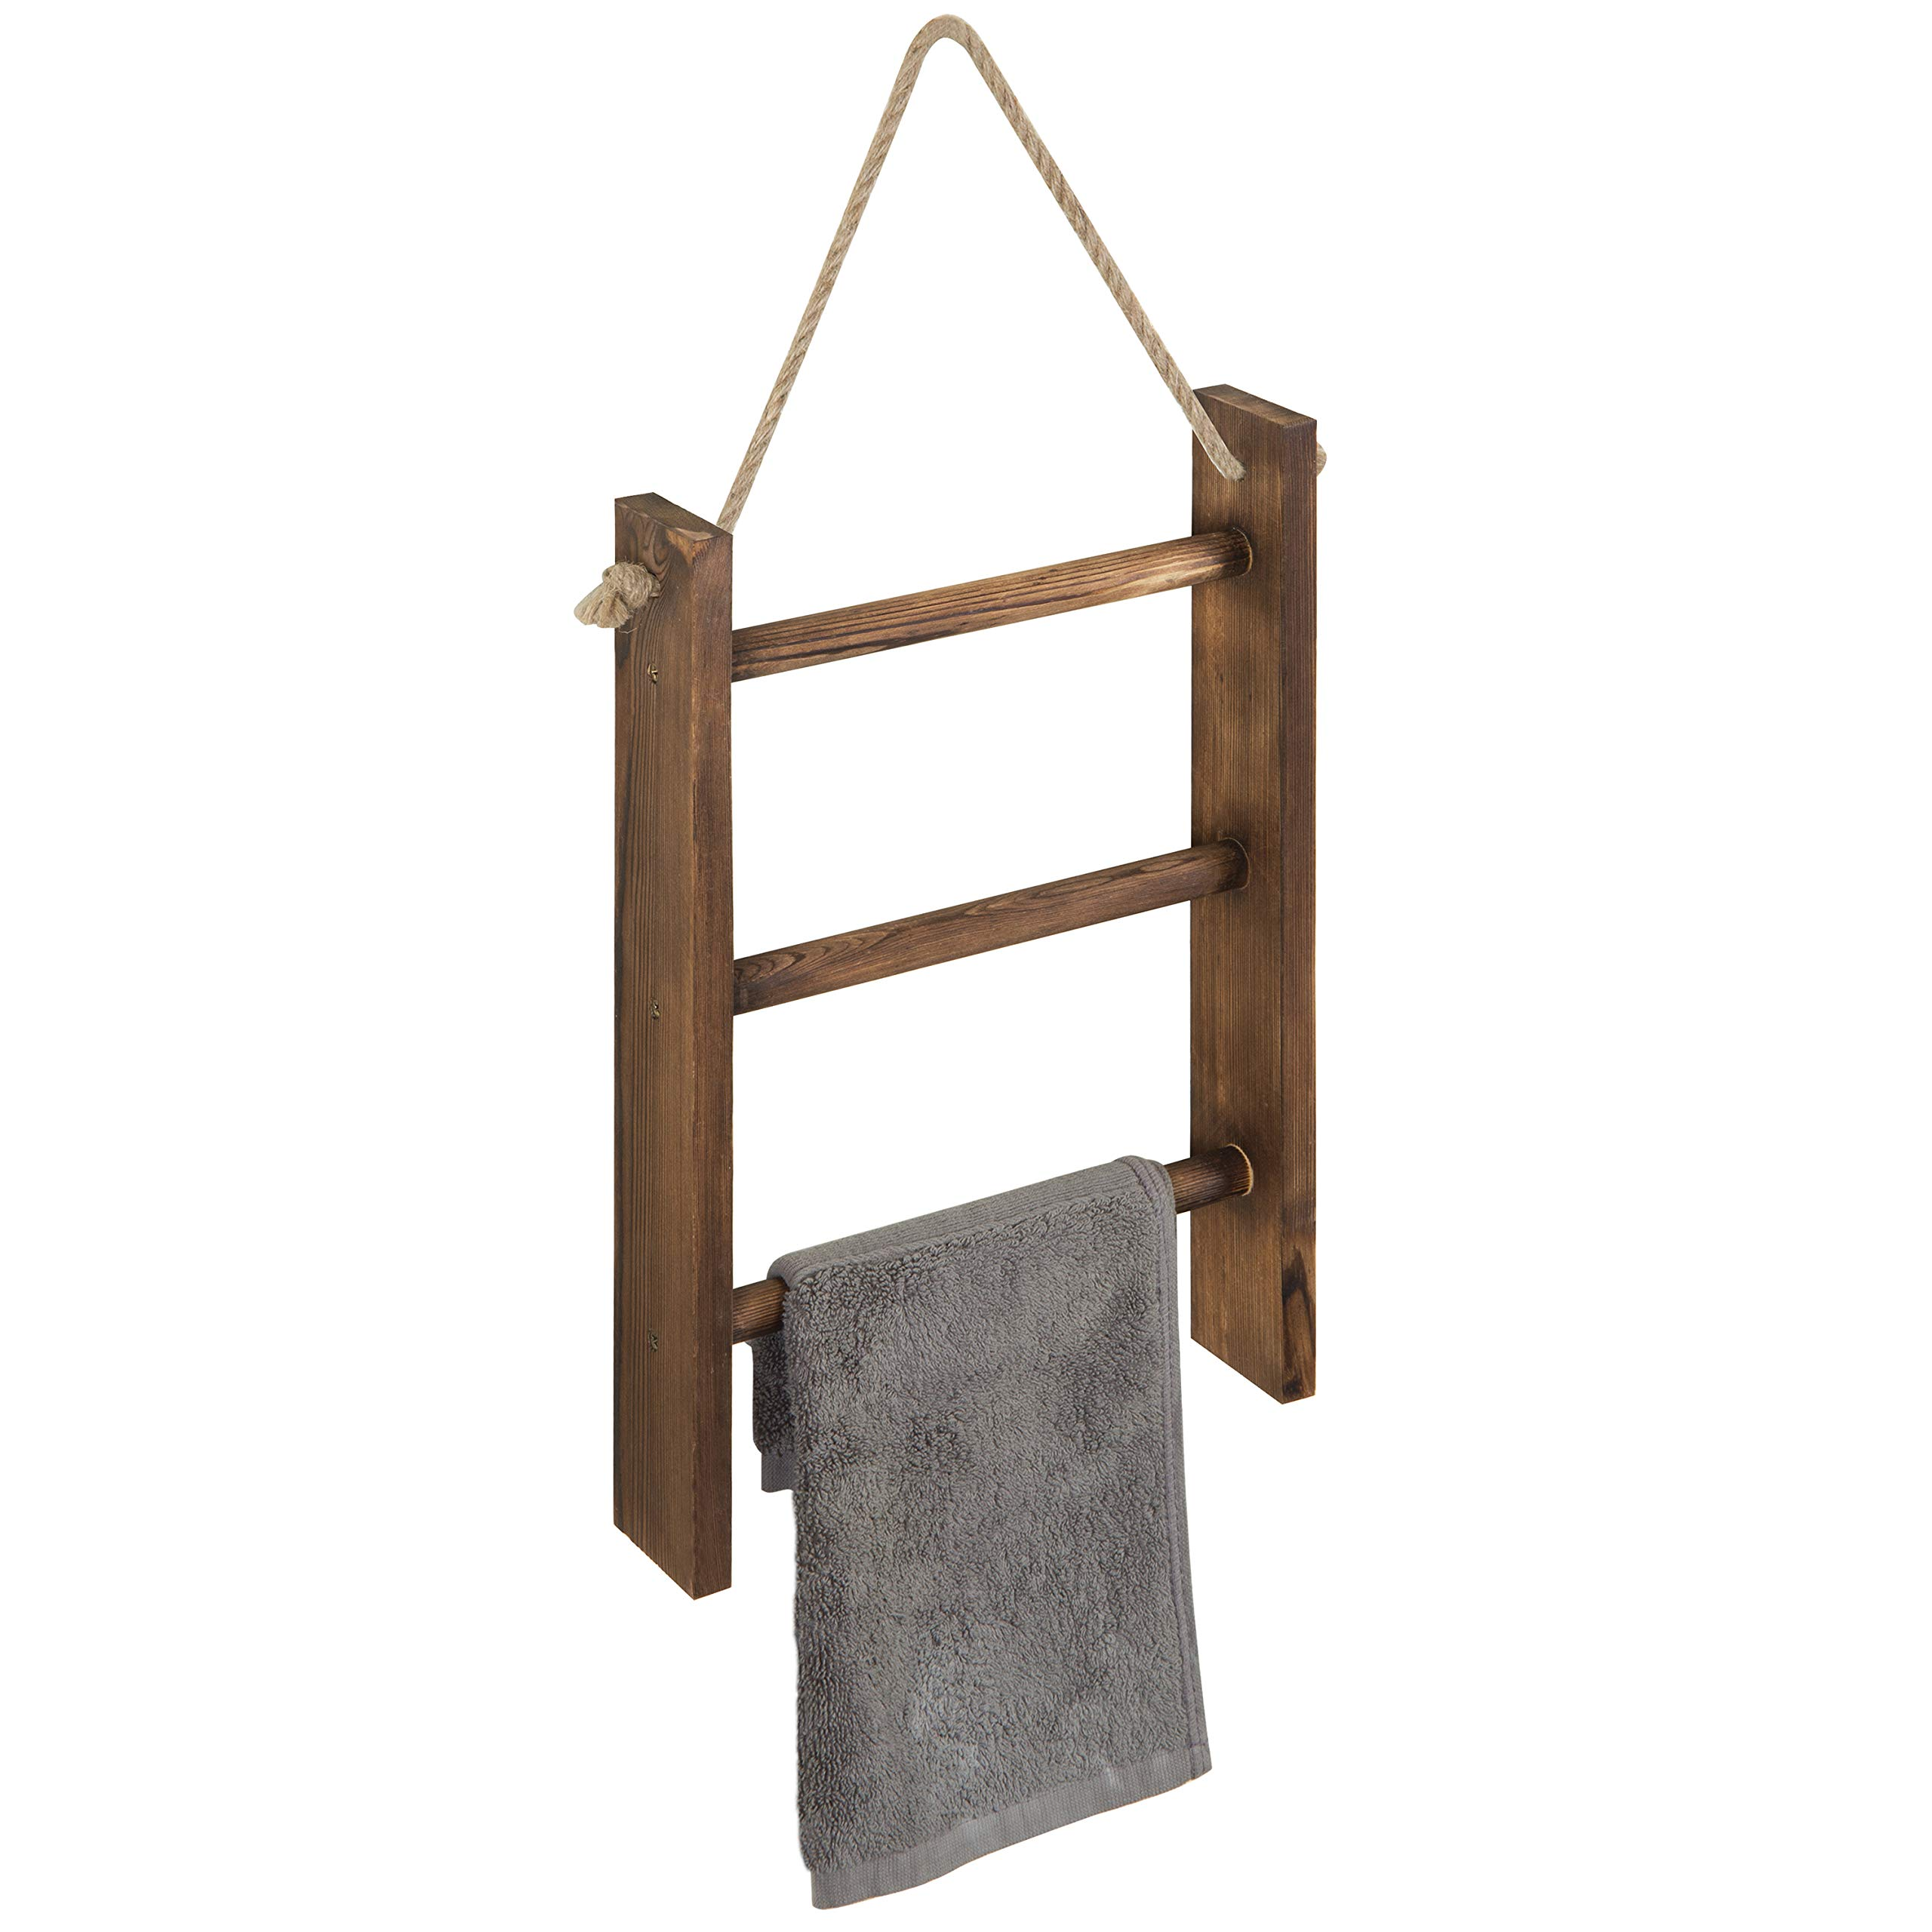 MyGift 3-Tier Rustic Wood Wall-Hanging Towel Ladder with Rope, Dark Brown, 16 x 10 Inch by MyGift